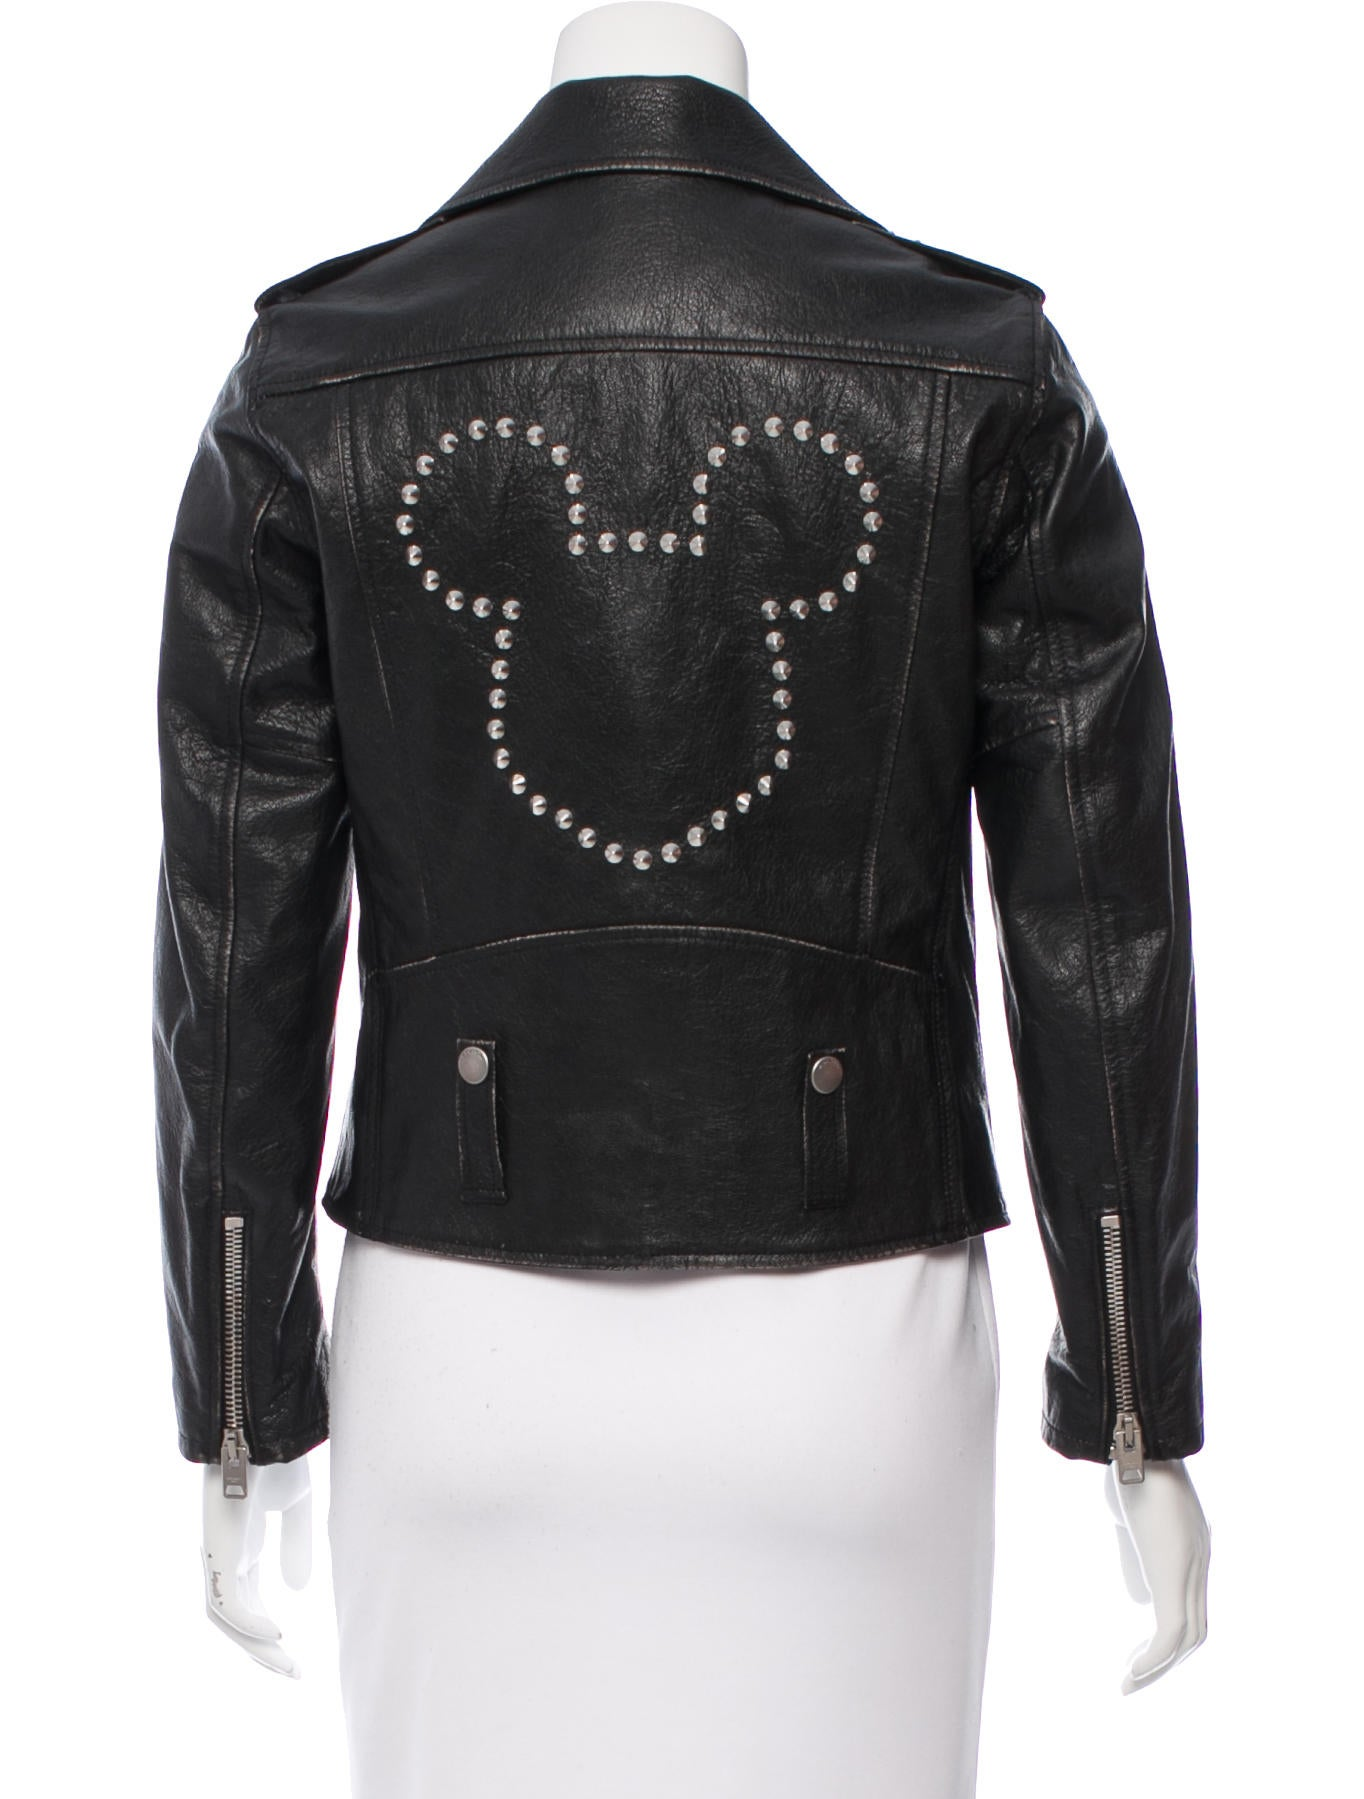 Coach 1941 Mickey Leather Jacket W Tags Clothing